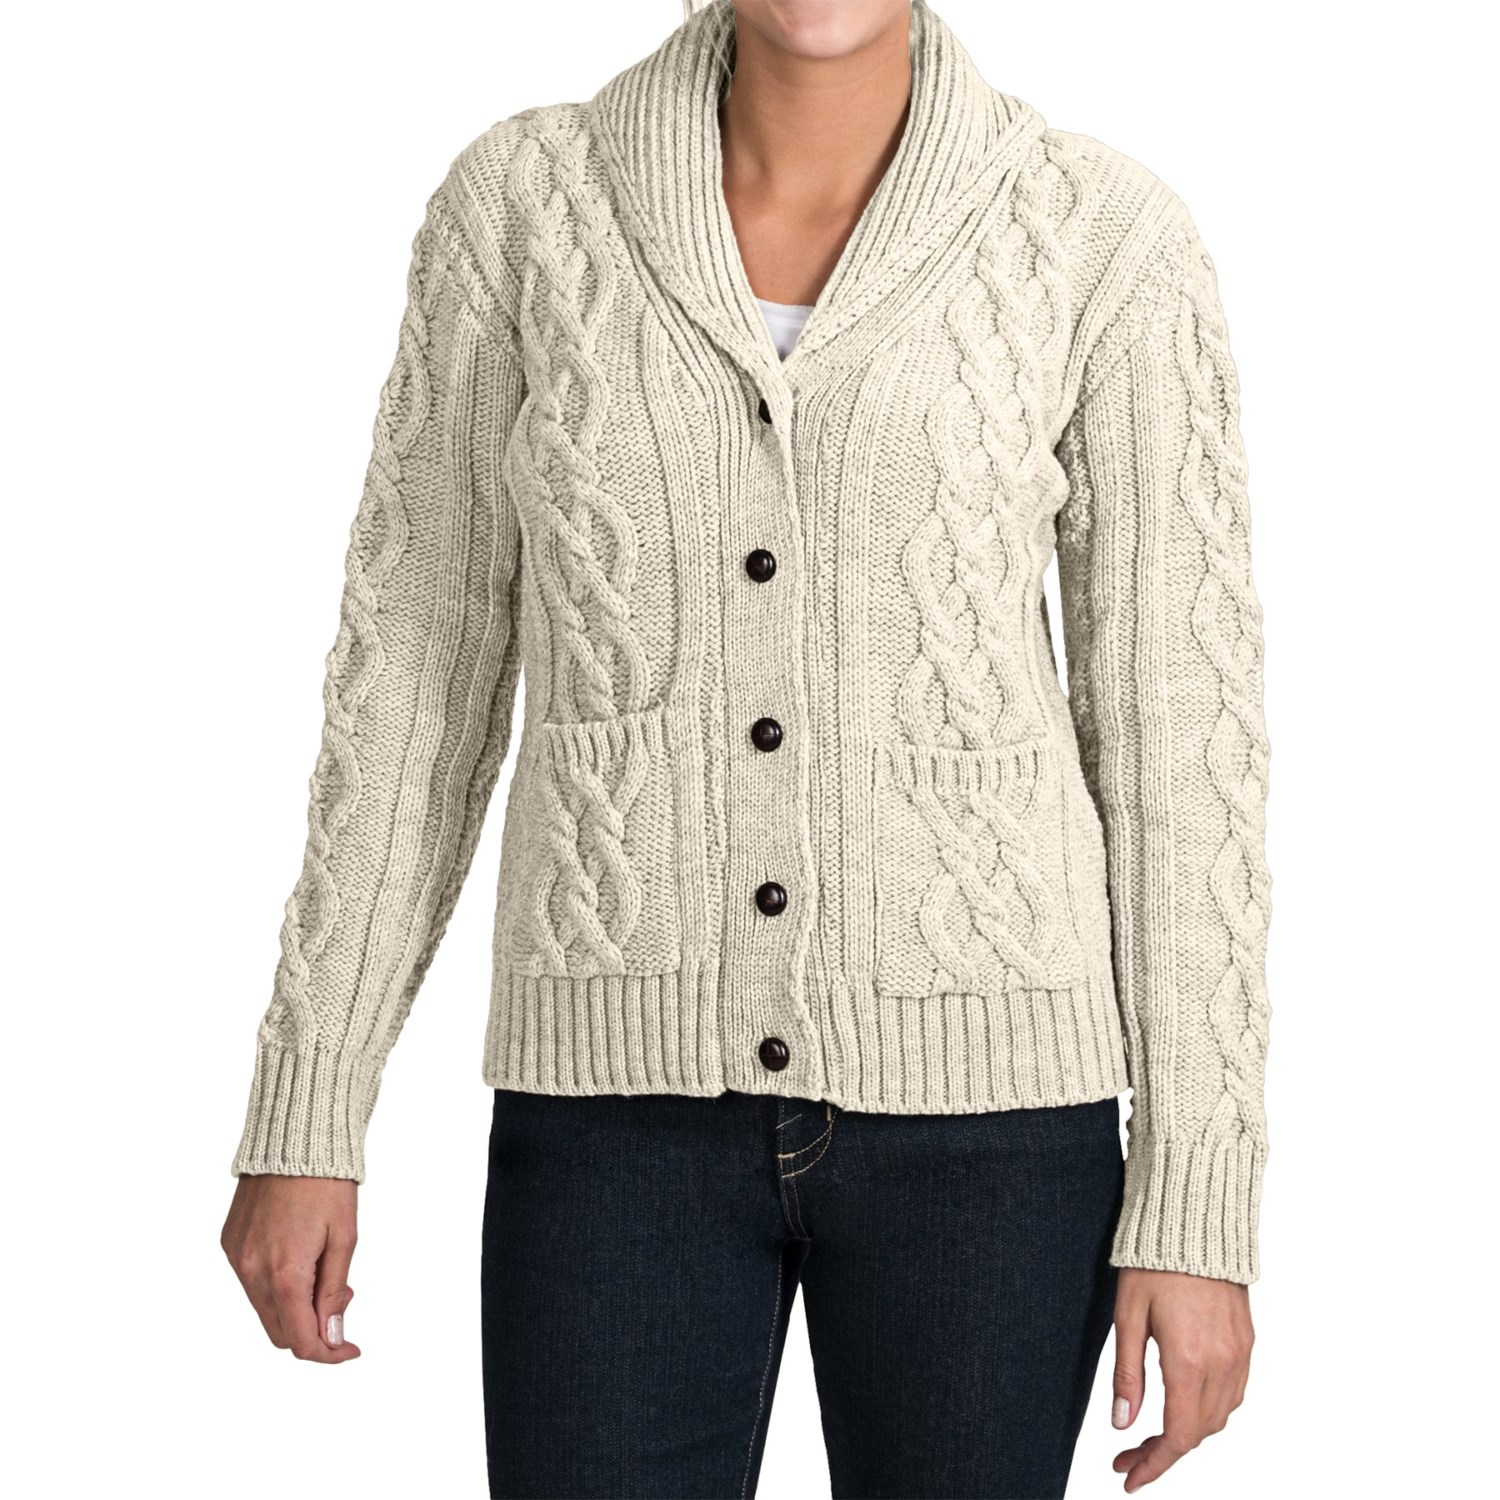 Women'S Shawl Collar Merino Wool Cardigan - Gray Cardigan Sweater